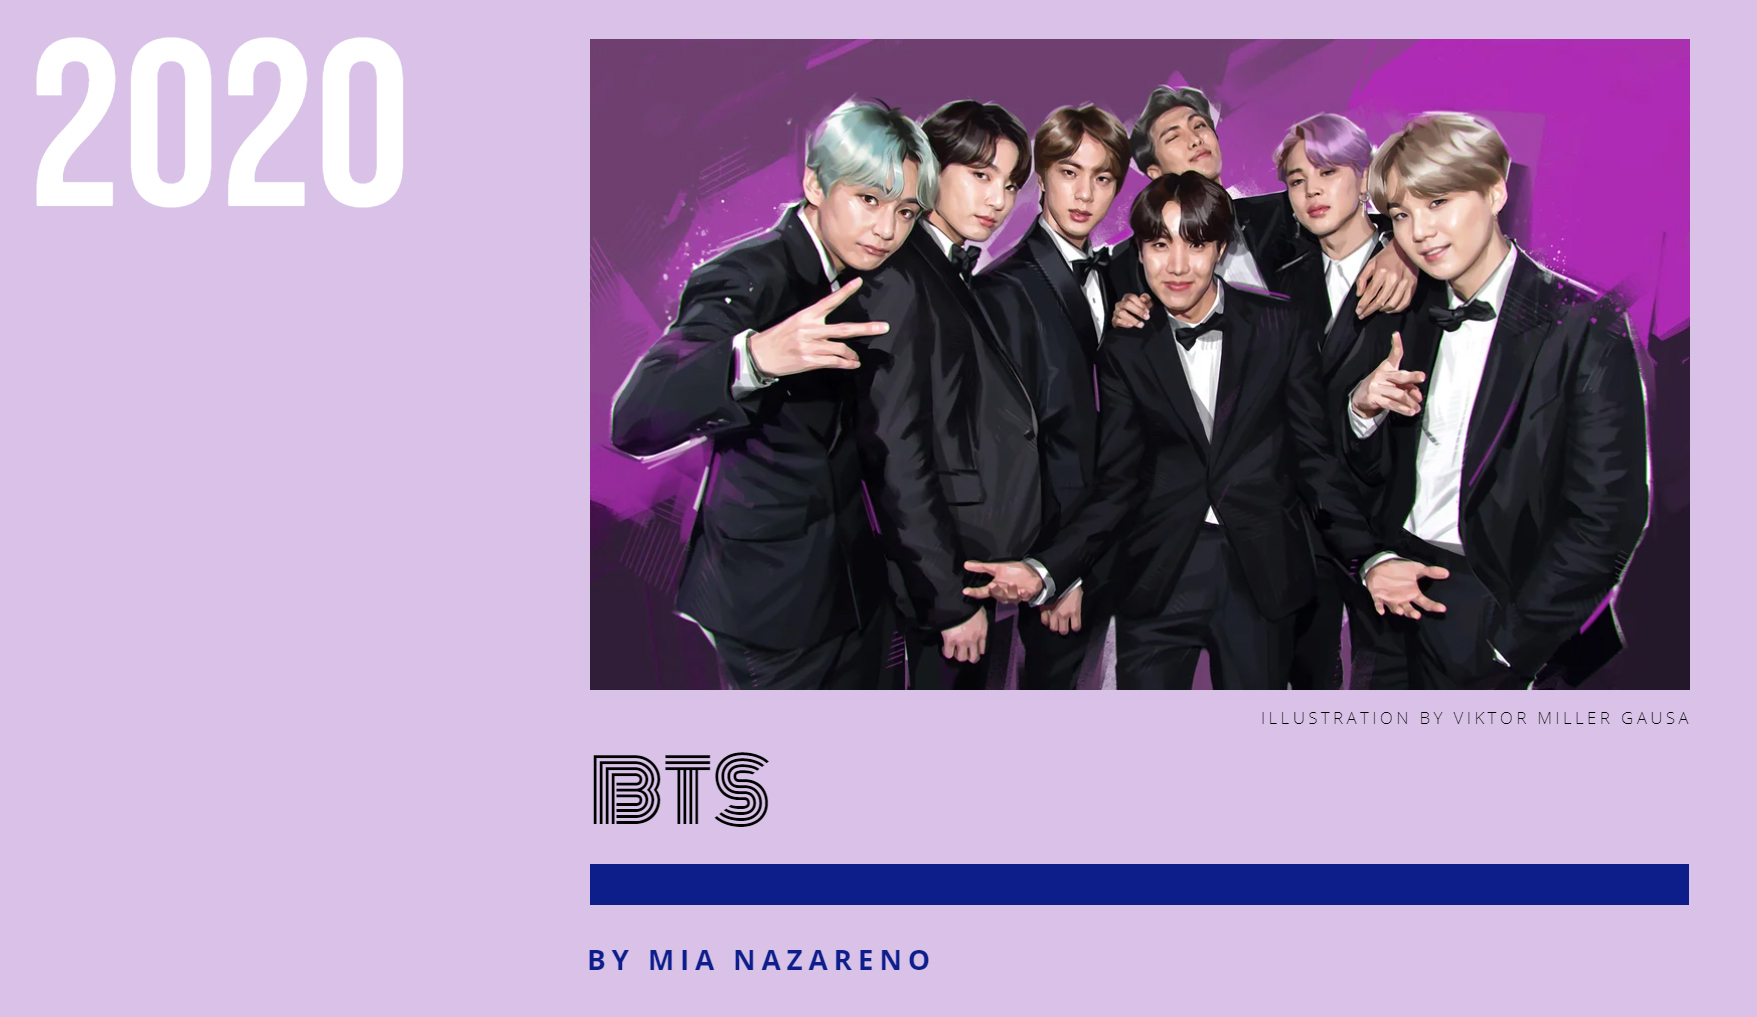 Billboard chooses BTS as the 'Greatest Pop Star' of 2020